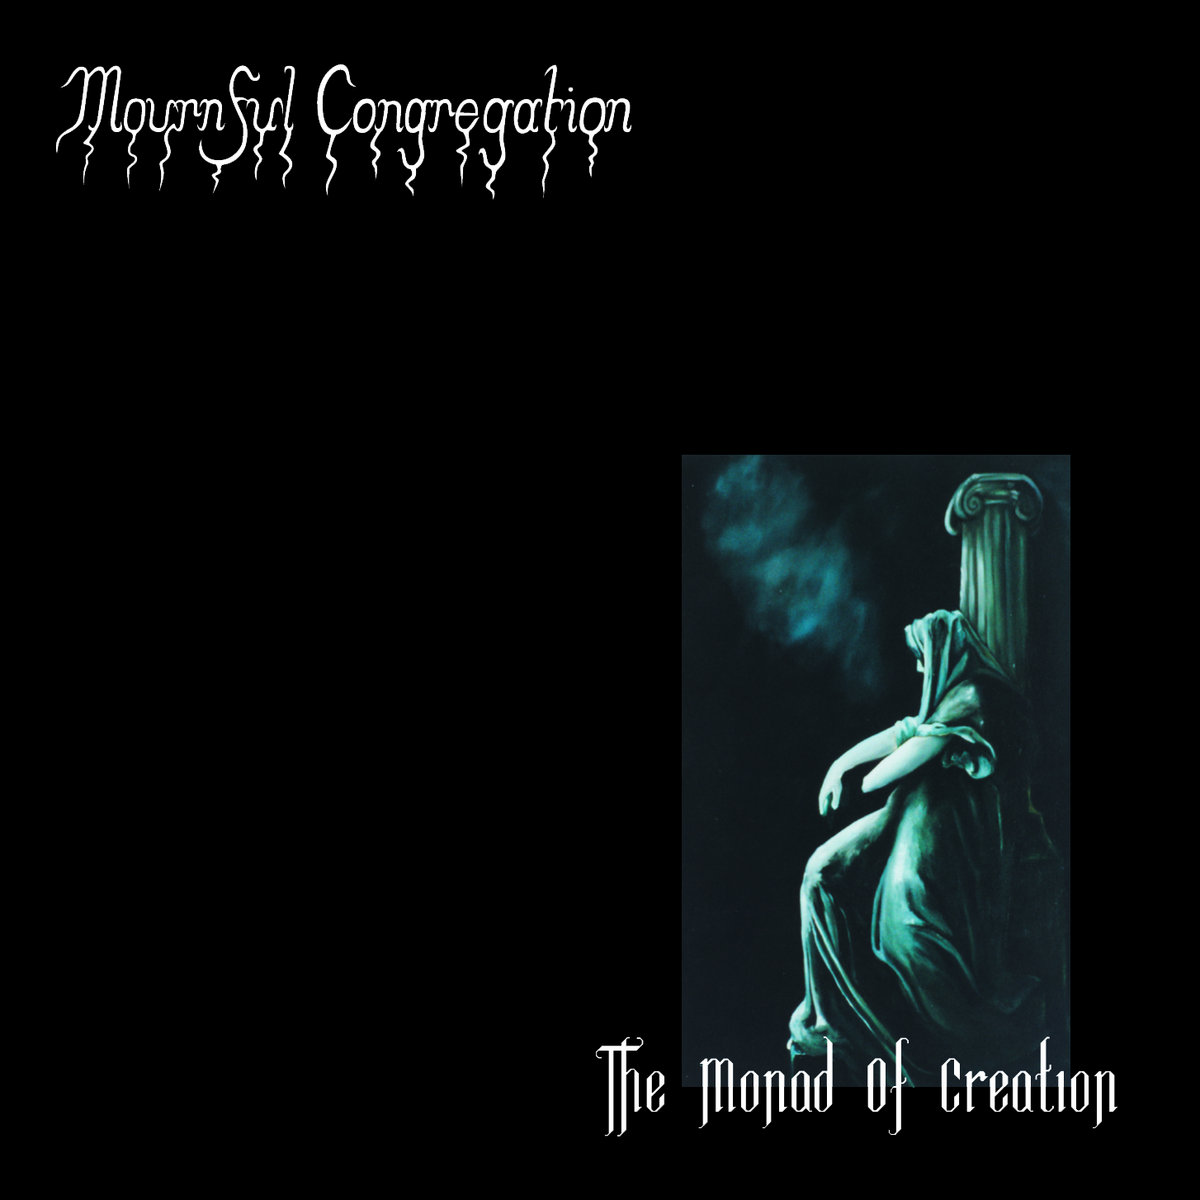 Mournful Congregation - The Monad Of Creation (Reissue 2012)